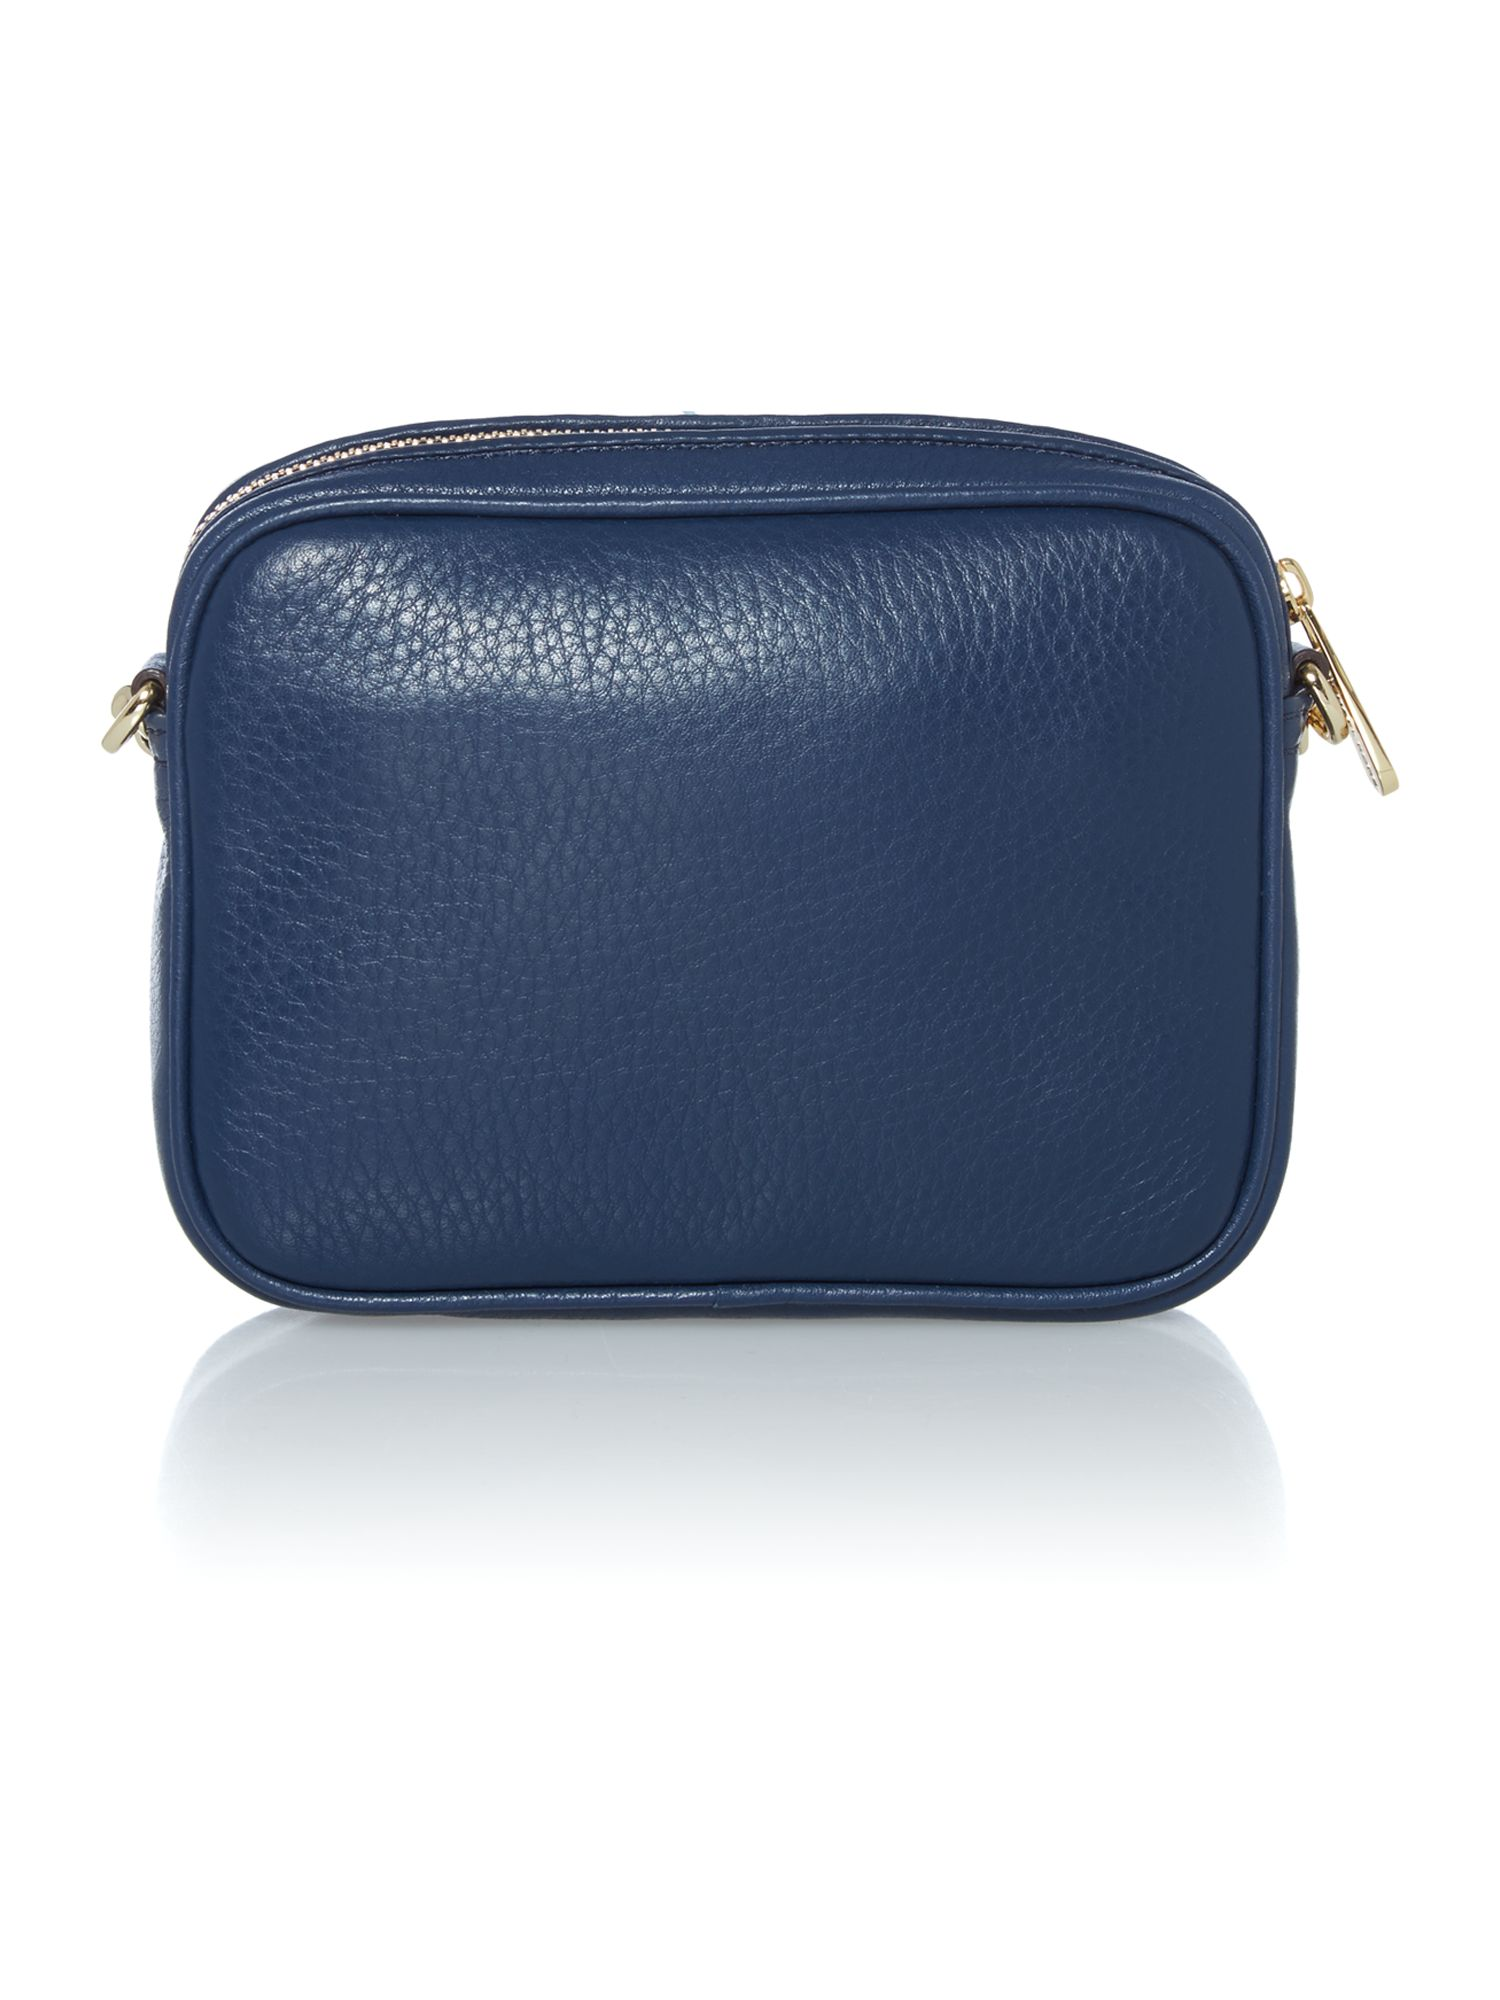 Jet Set Item navy cross body bag